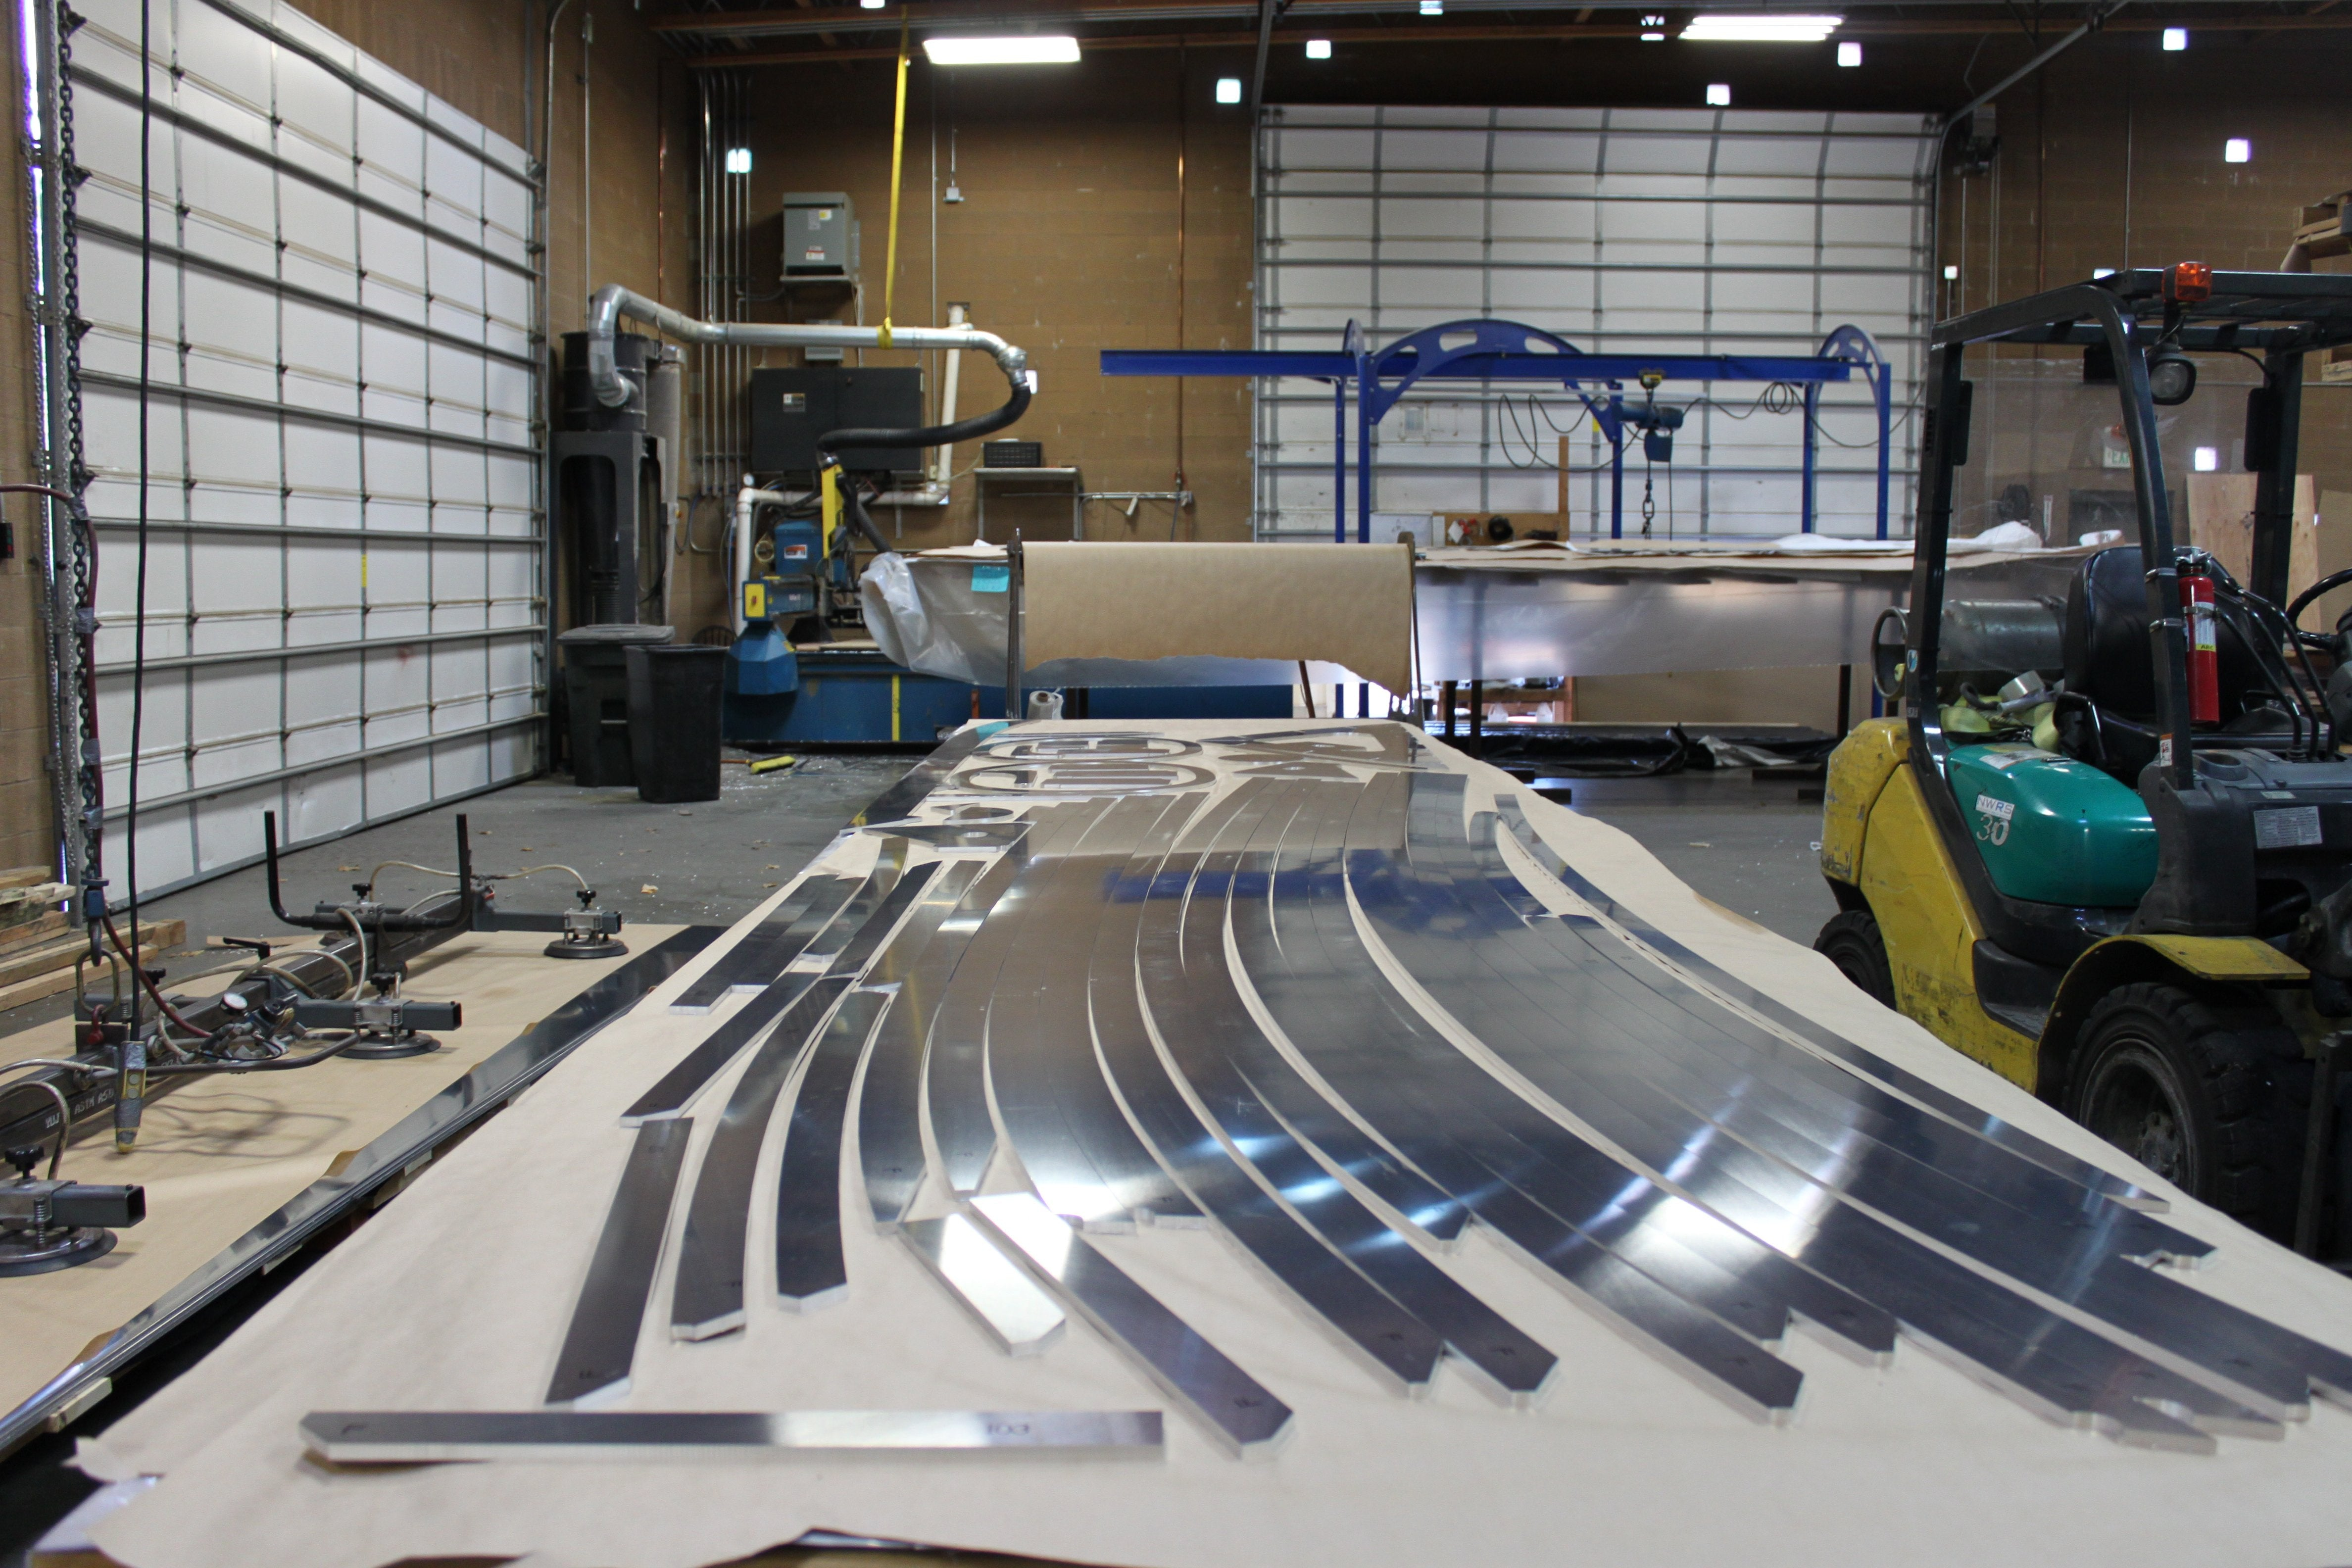 4 Things to Consider When Choosing a Metal Fabrication Company